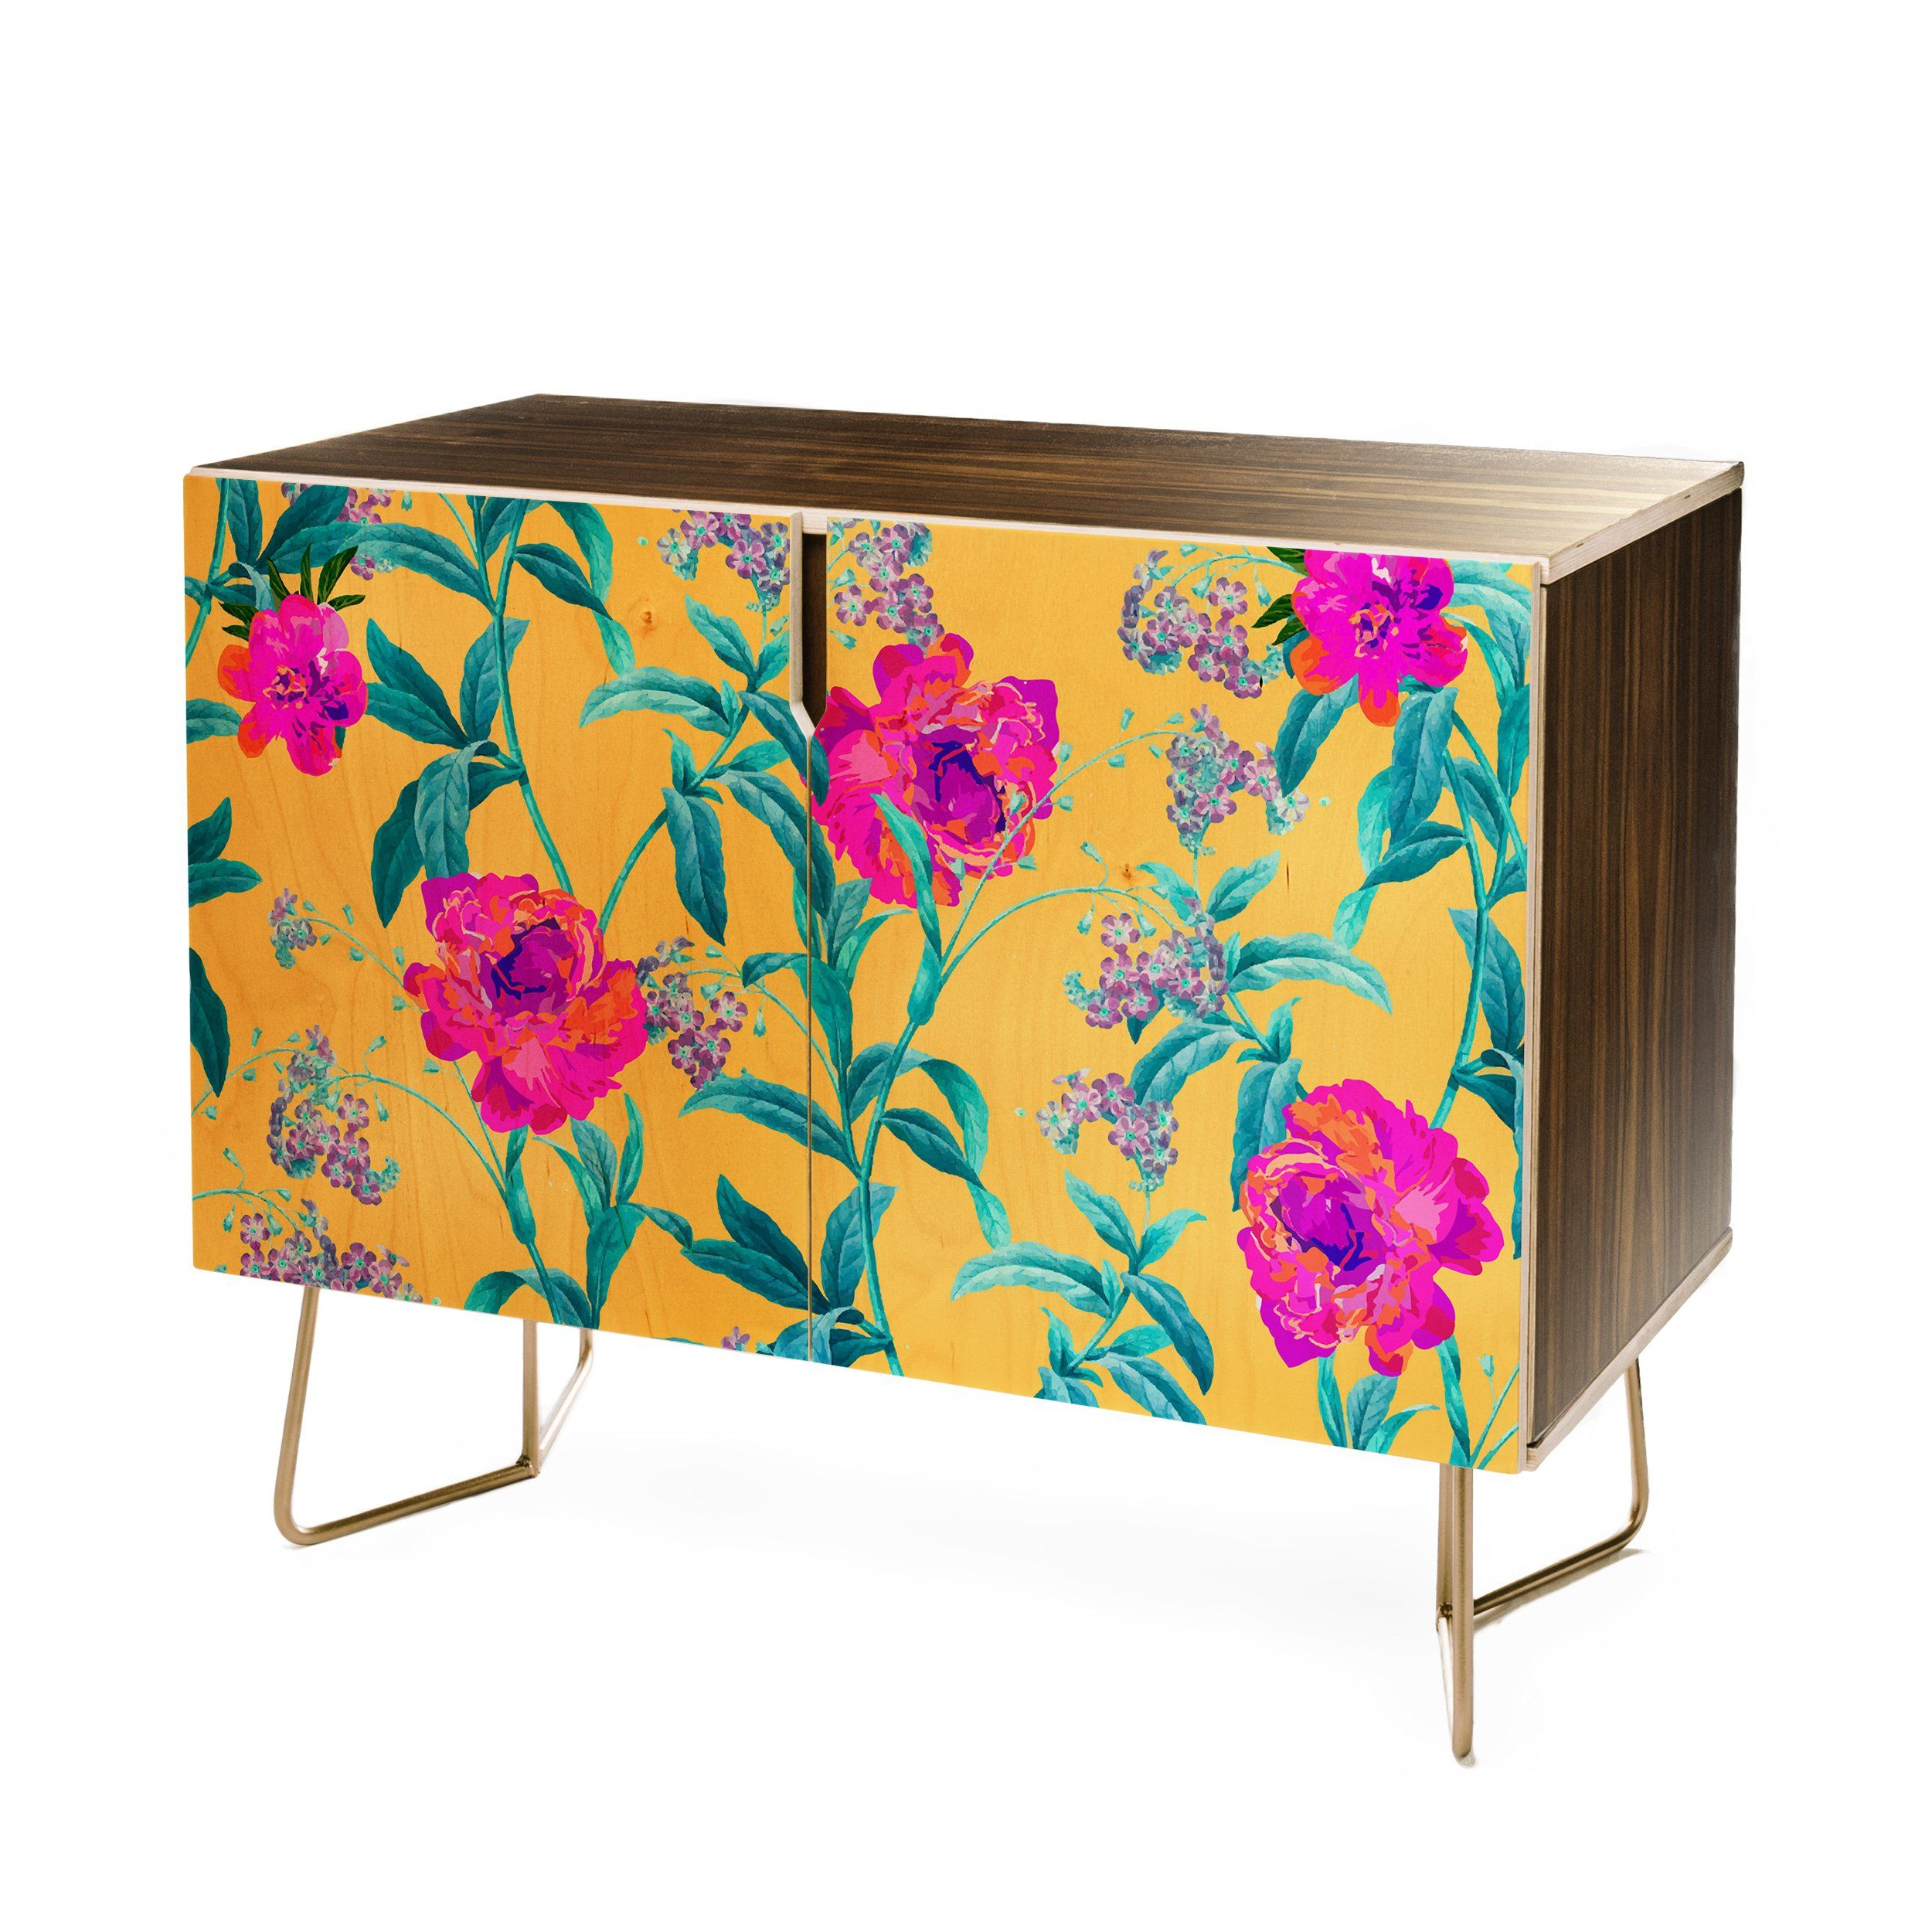 Gabriela Fuente Florastic Credenza In 2019 | Decor Regarding Floral Beauty Credenzas (View 8 of 20)